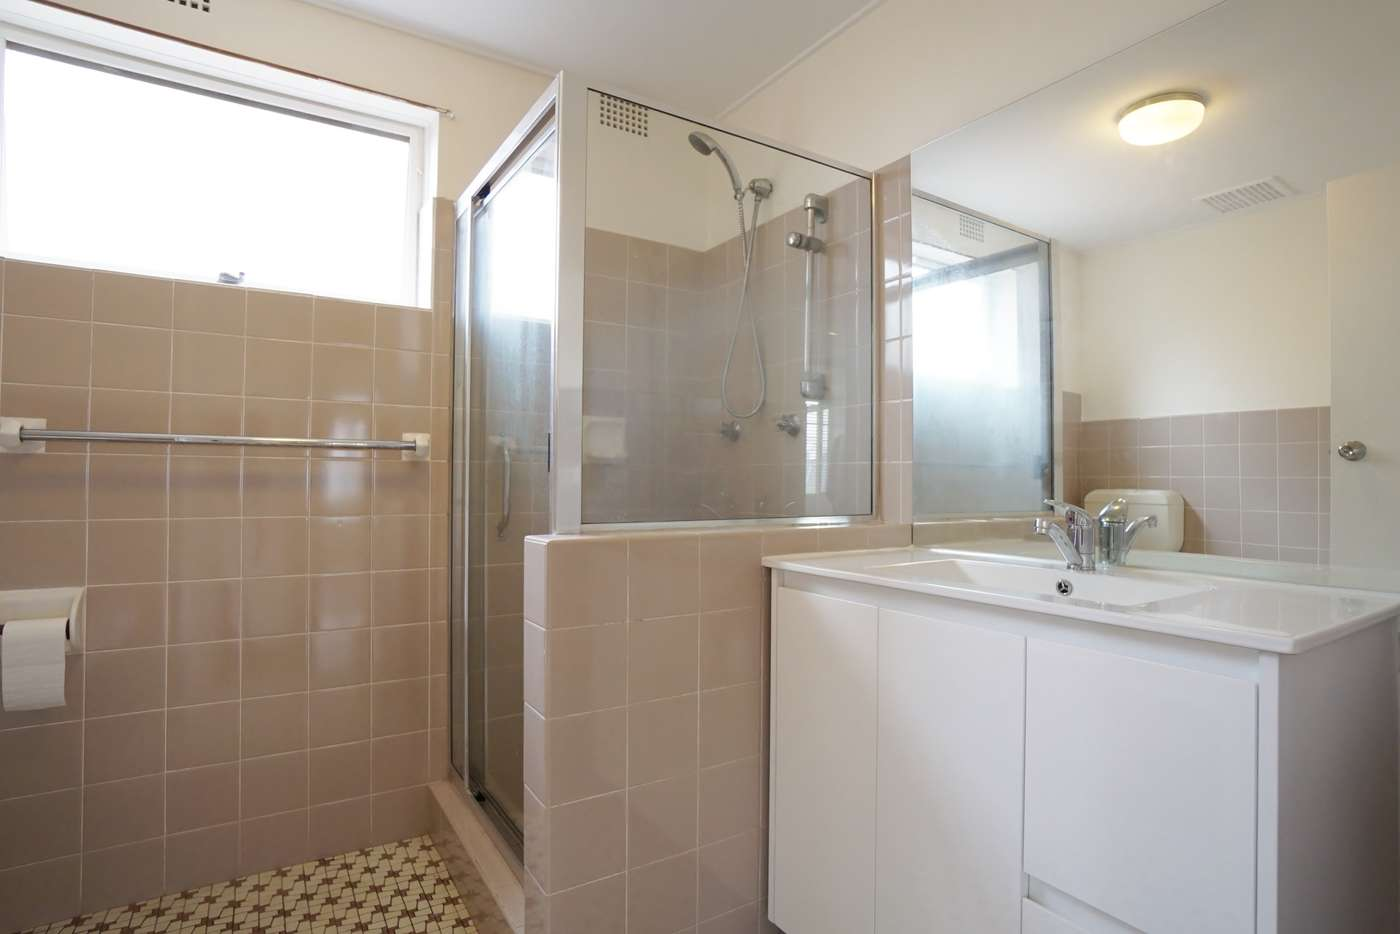 Sixth view of Homely unit listing, 8/717 Blaxland Road, Epping NSW 2121